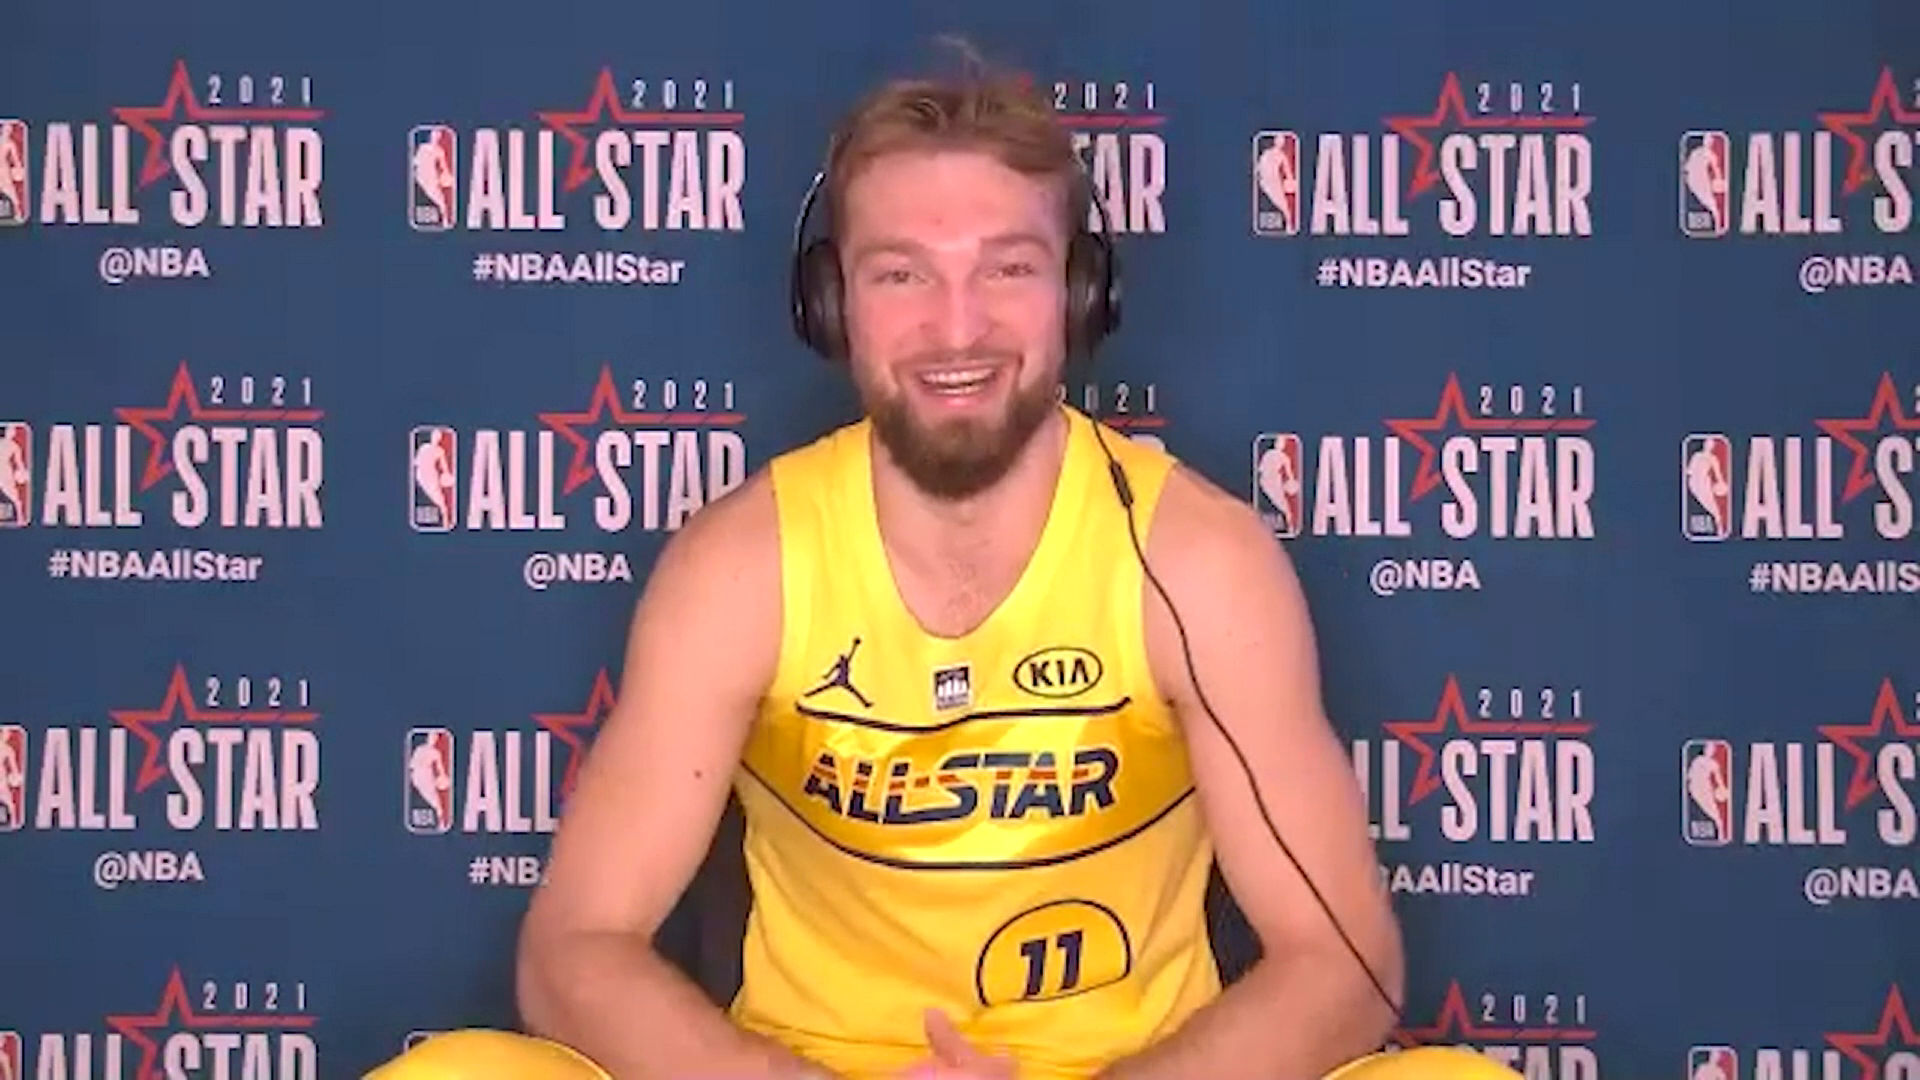 Postgame: Sabonis on 2021 All-Star Experience